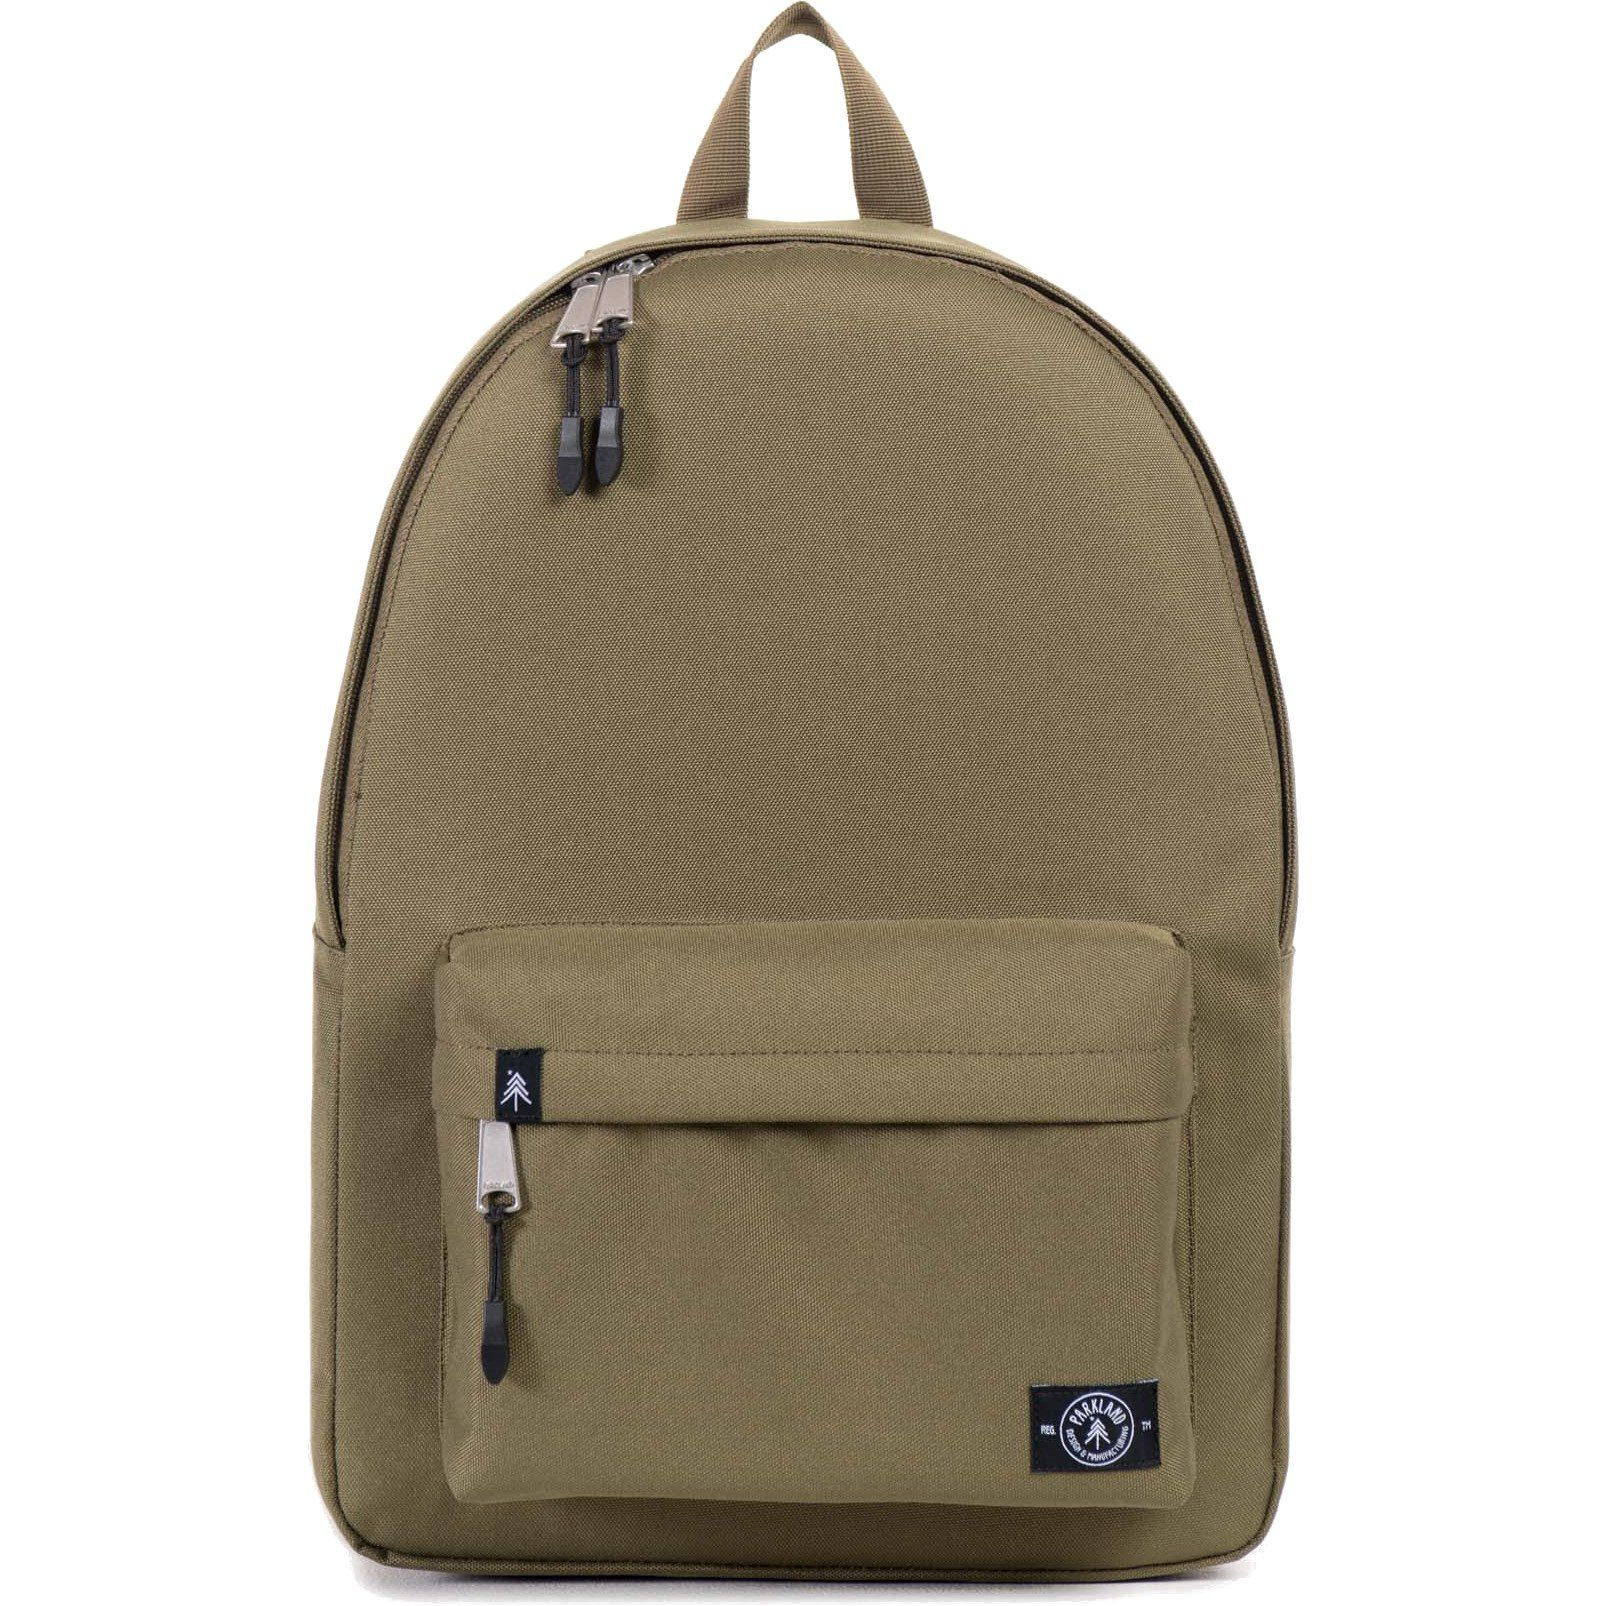 """Parkland The Vintage Backpack (Army). The Vintage Backpack is a perfect daytime companion. It's the ideal pack mule to take for a day hike, carryon or pack for work. 13"""" Laptop Sleeve & Classic Zipper Pull. Durable 600D Polyester Exterior & Heavy-Duty Webbing. Dimensions: 16.5""""(H) x 11.75""""(W) x 7""""(D); 25L."""